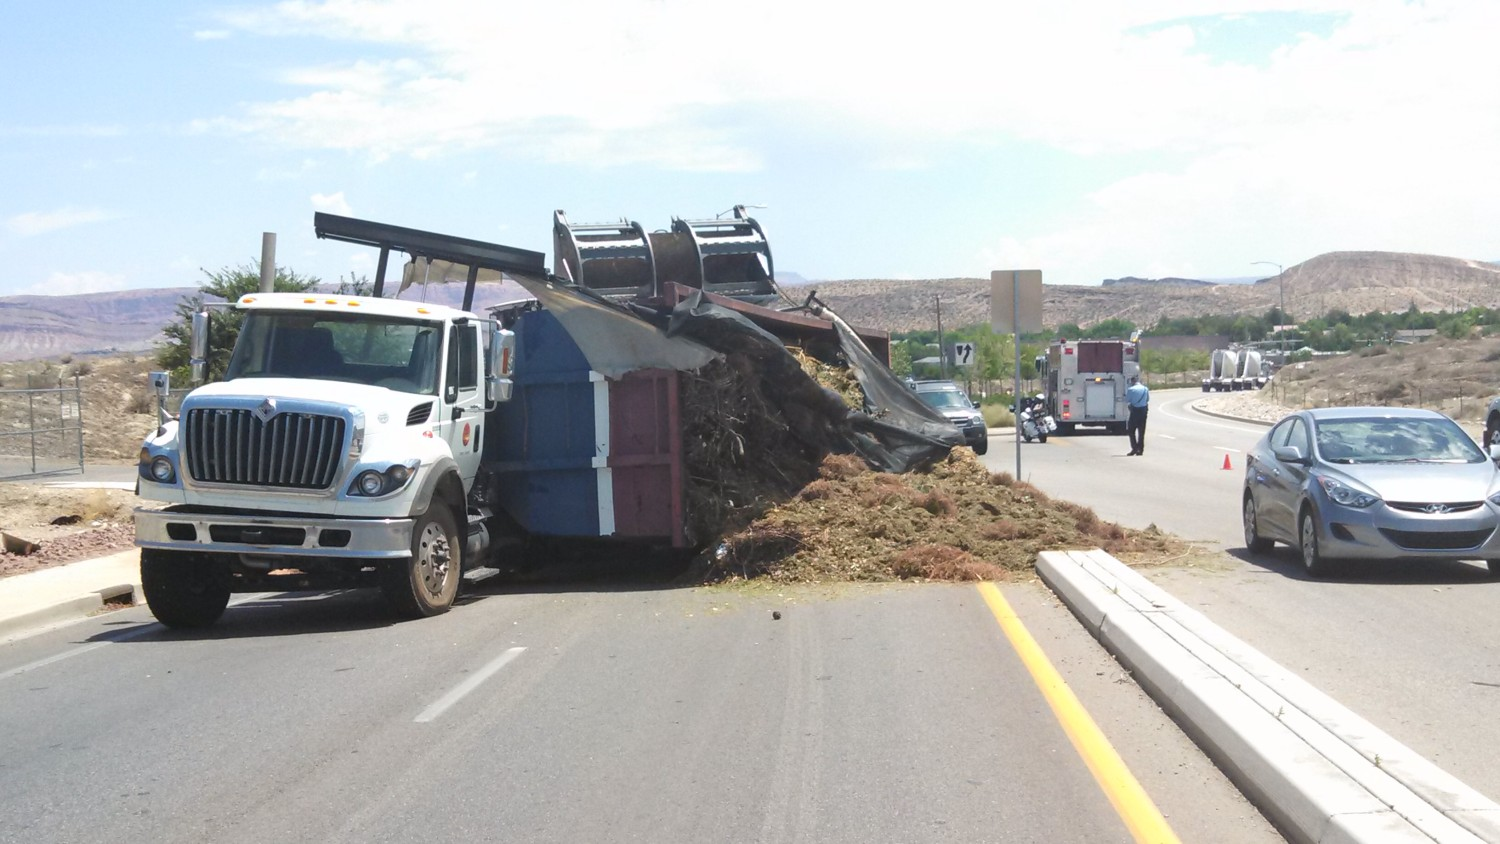 A truck blocks part of Brigham Road after the load of compost it was hauling spills across the roadway, St. George, Utah, July 26, 2013 | Photo by Mori Kessler, St. George News